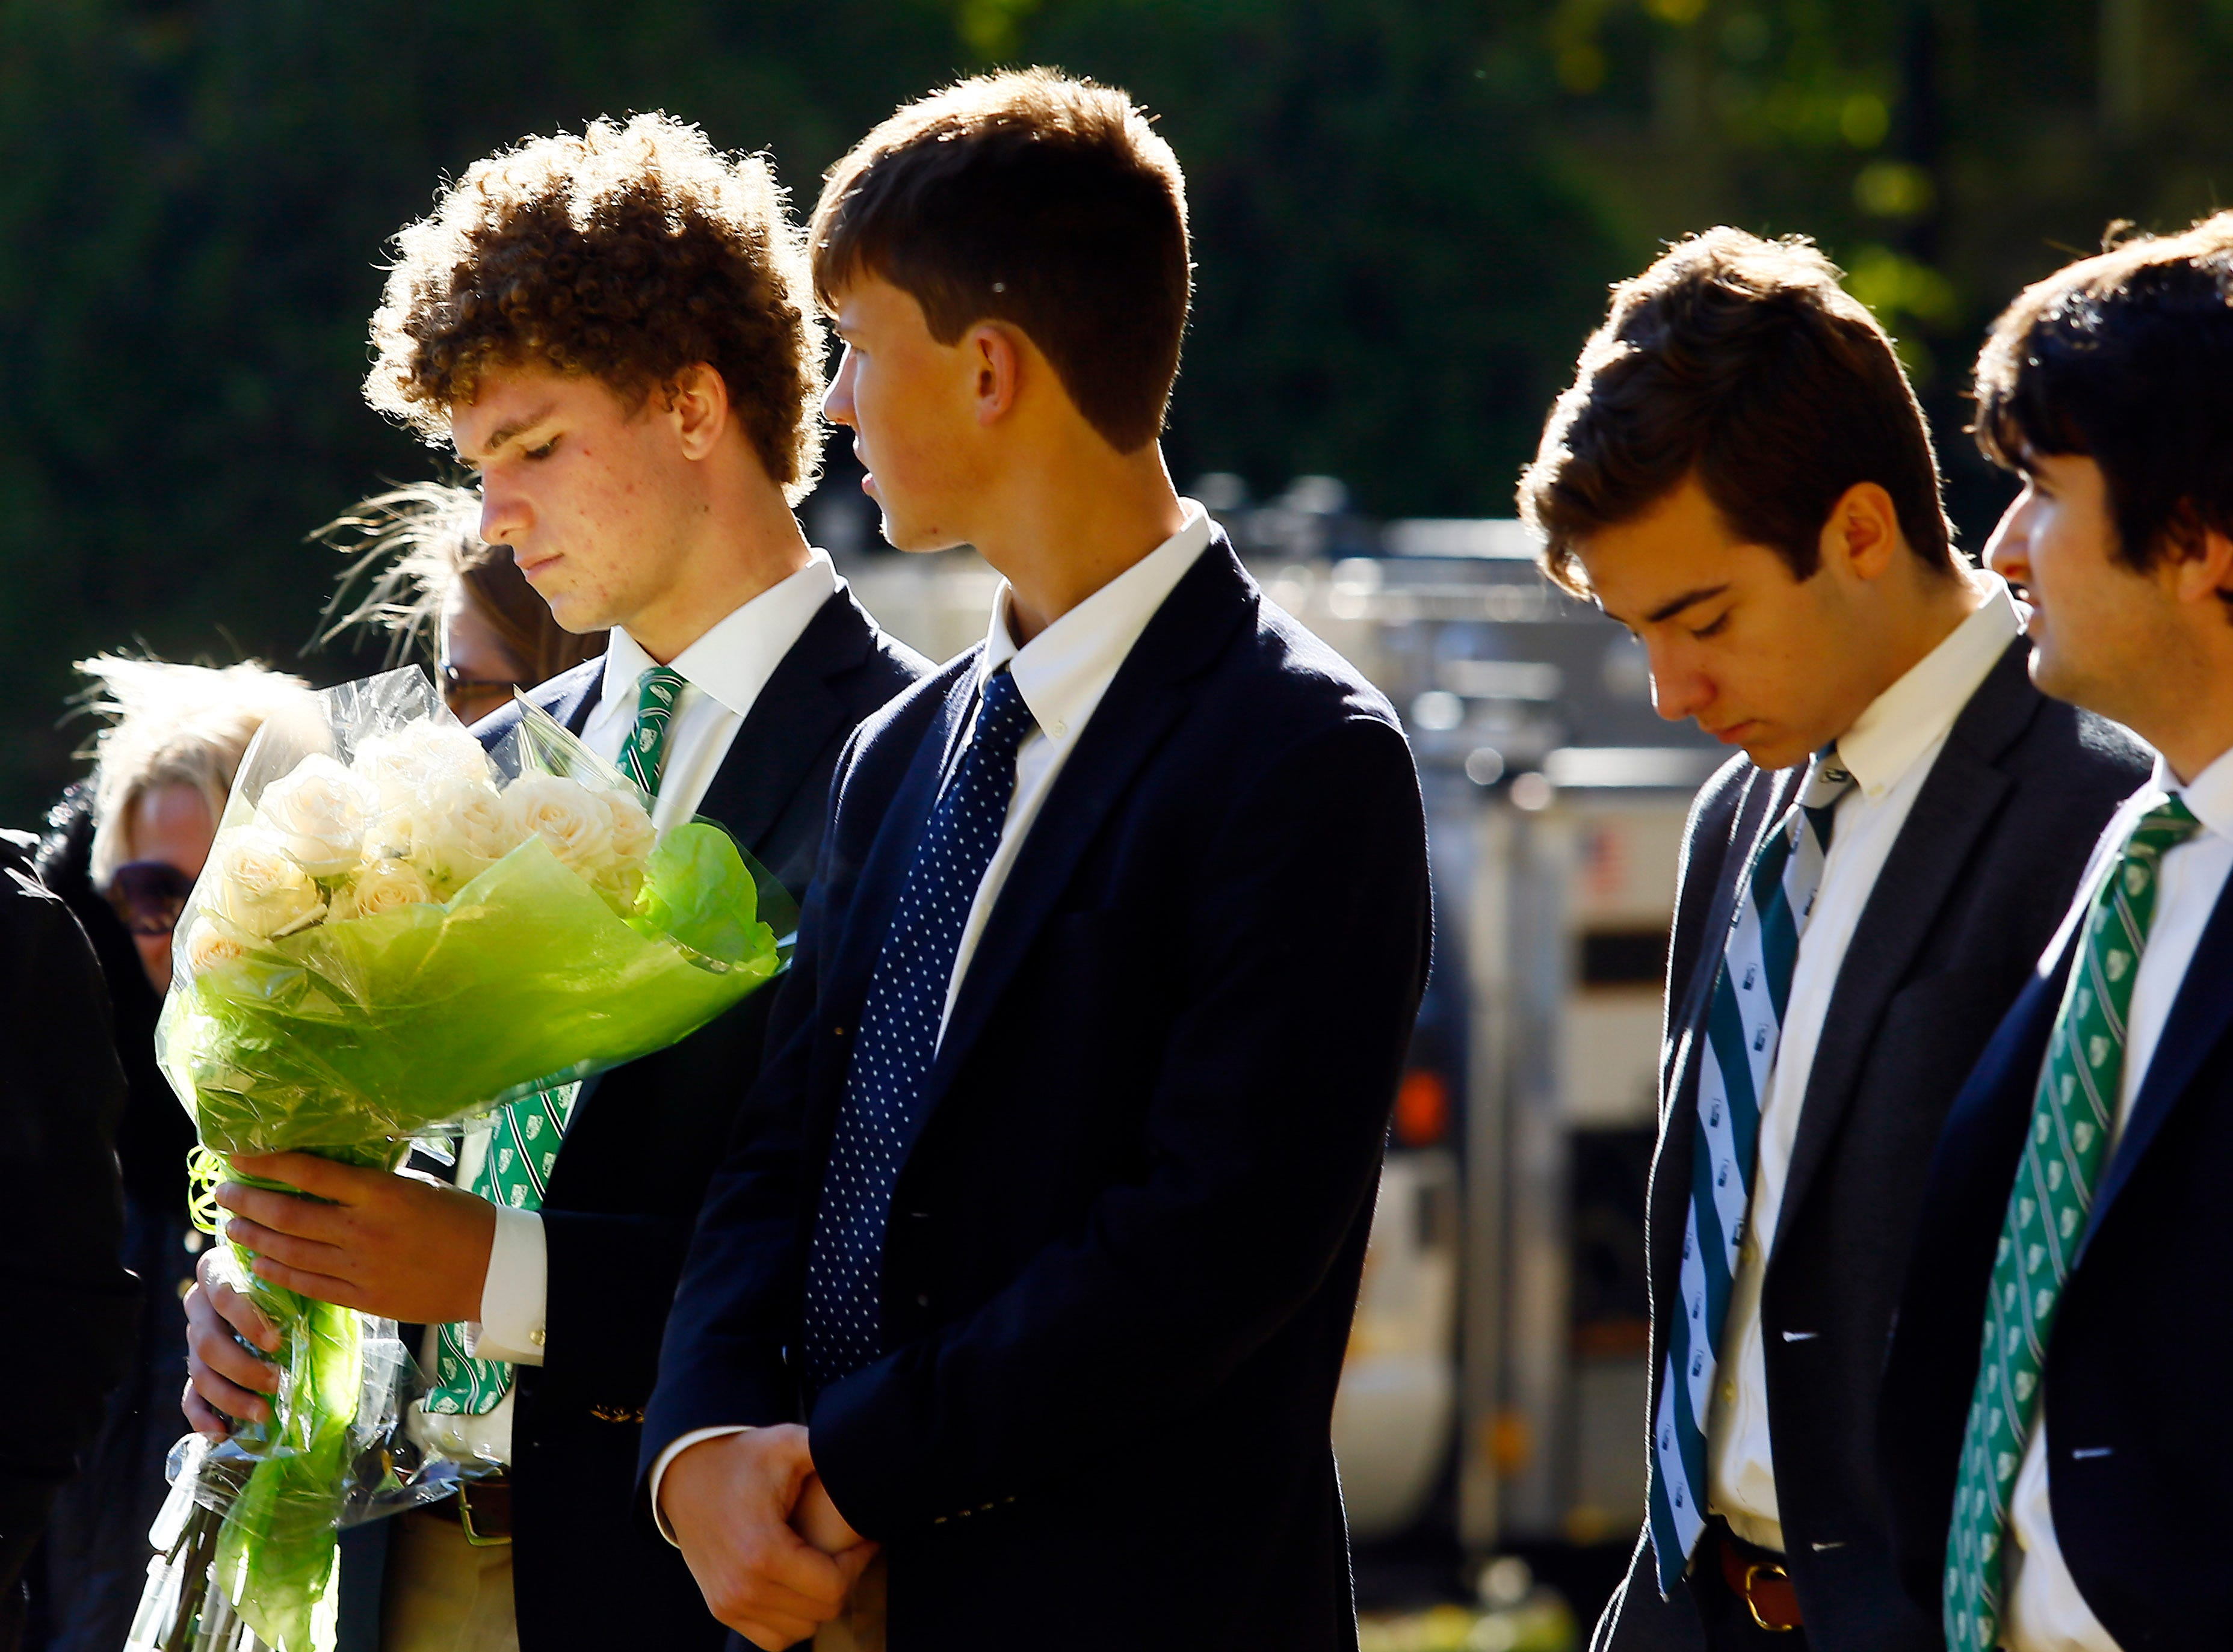 Delbarton junior Jack Readlinger, l, joined classmates during a graveside service and blessing at Orchard Street Cemetery in Dover gathering to bless the grave for baby Anthony Mary, whom they so-named after he was abandoned and found deceased at a recycling center in Mine Hill. October 30, 2018, Dover, NJ